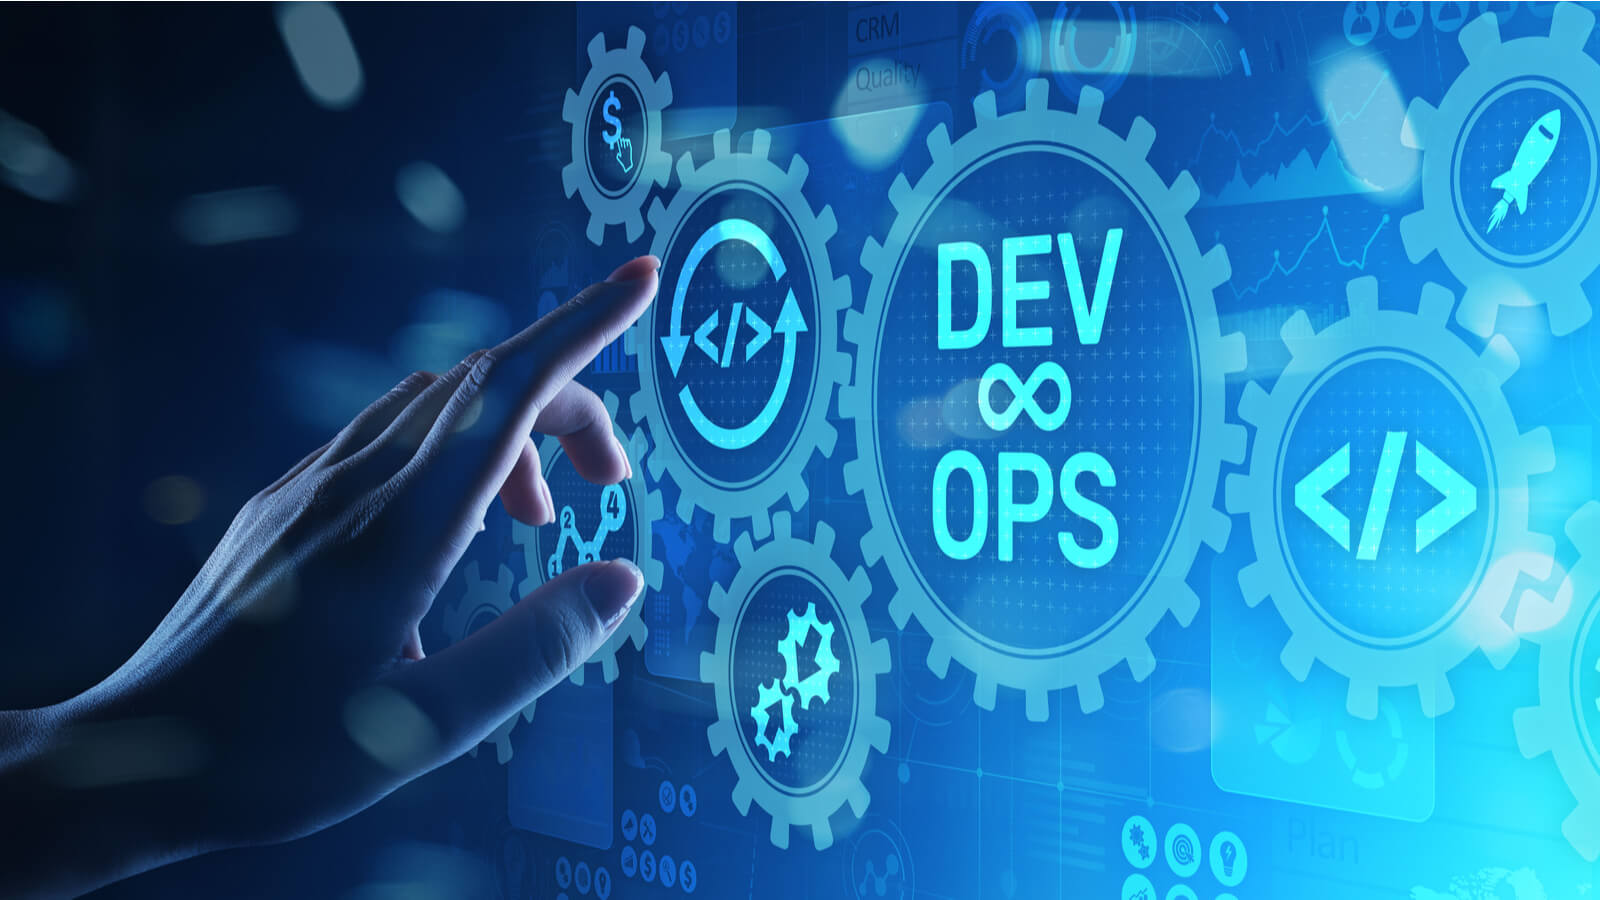 Scaling DevOps for the Enterprise: Opportunities & Challenges